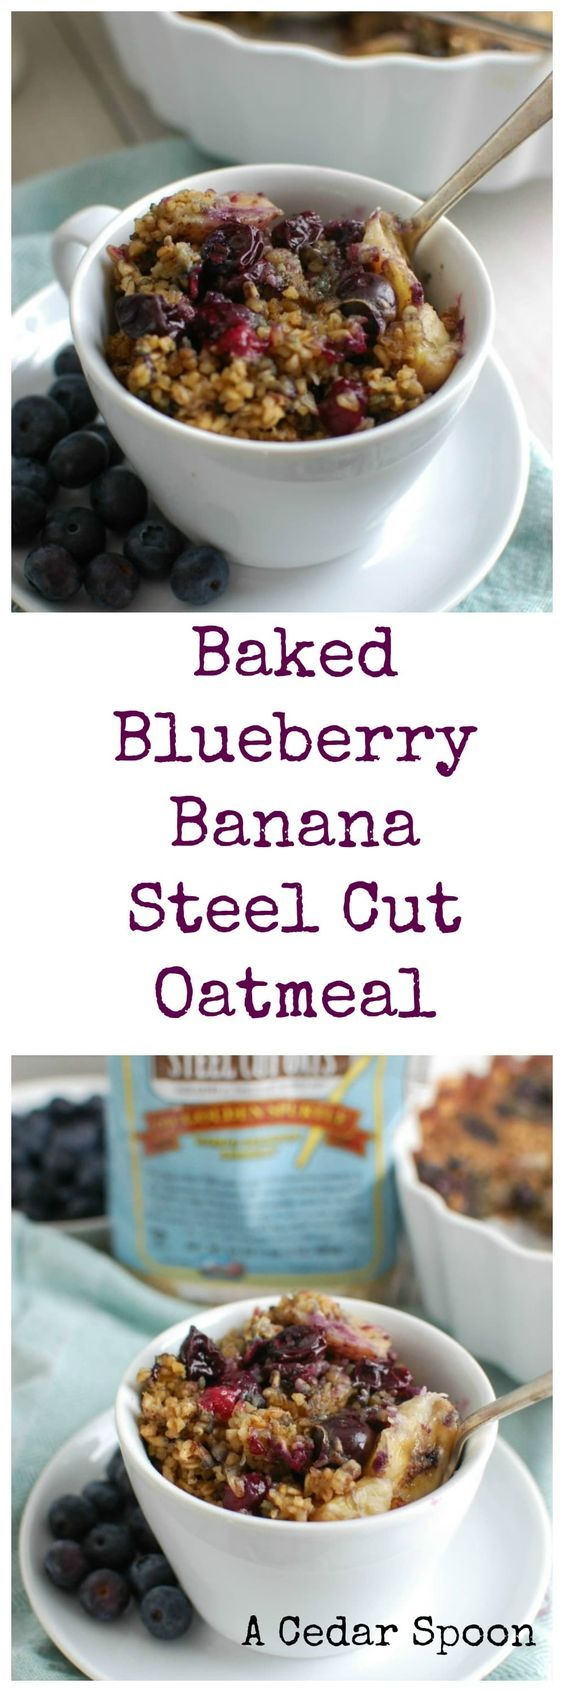 Baked Blueberry Banana Steel Cut Oatmeal - healthy snack